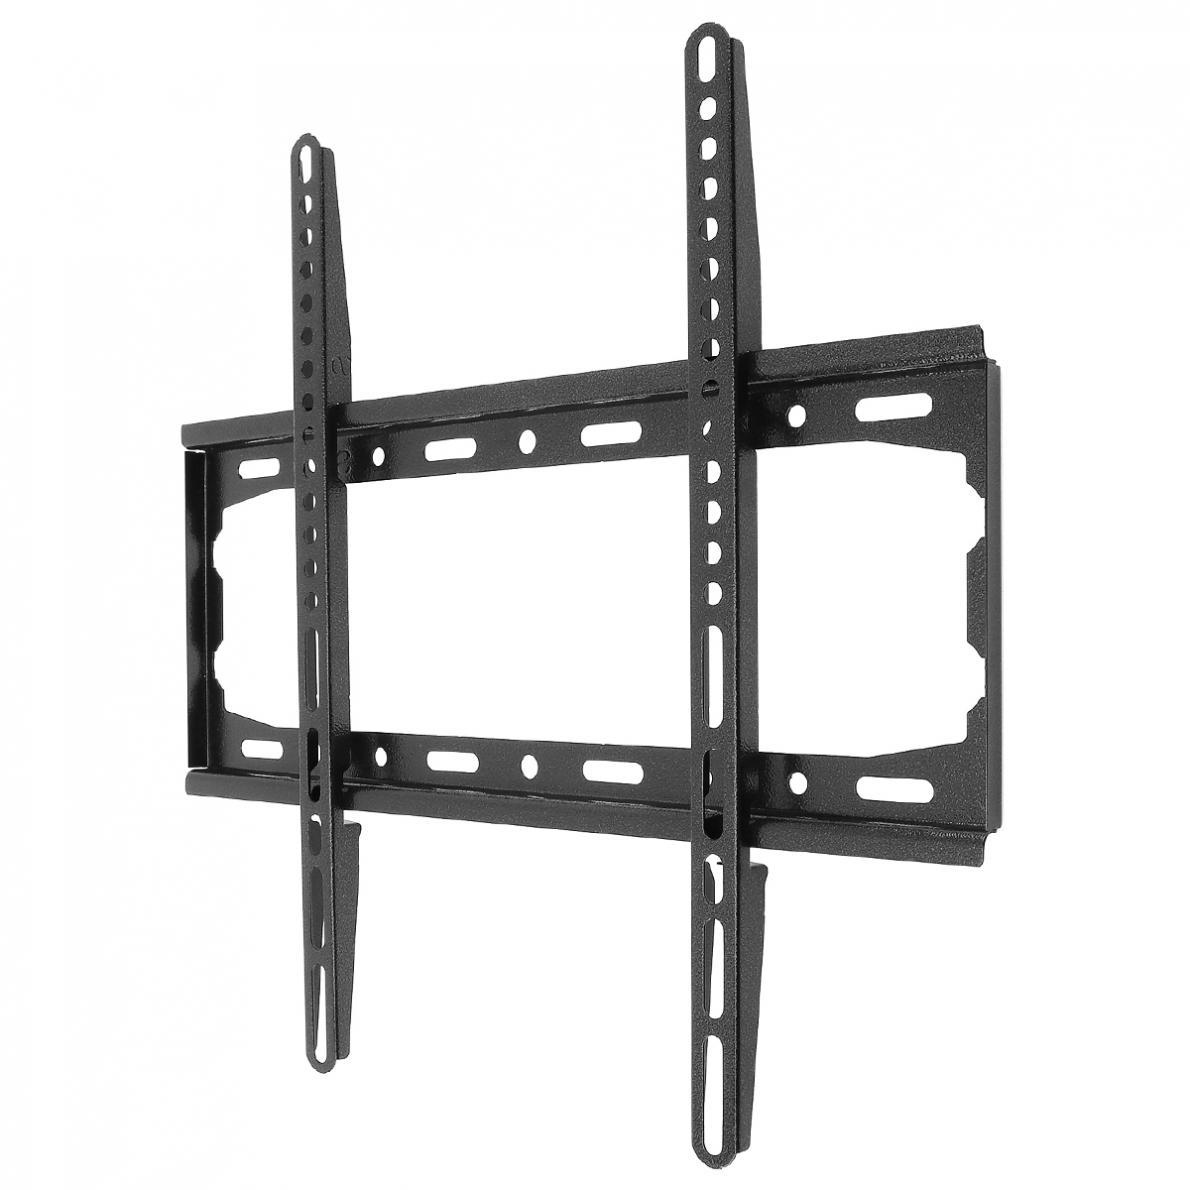 Universal 45KG TV Wall Mount Bracket Fixed Flat Panel TV Stand Holder Frame for 26-55 Inch Plasma TV HDTV LCD LED Monitor